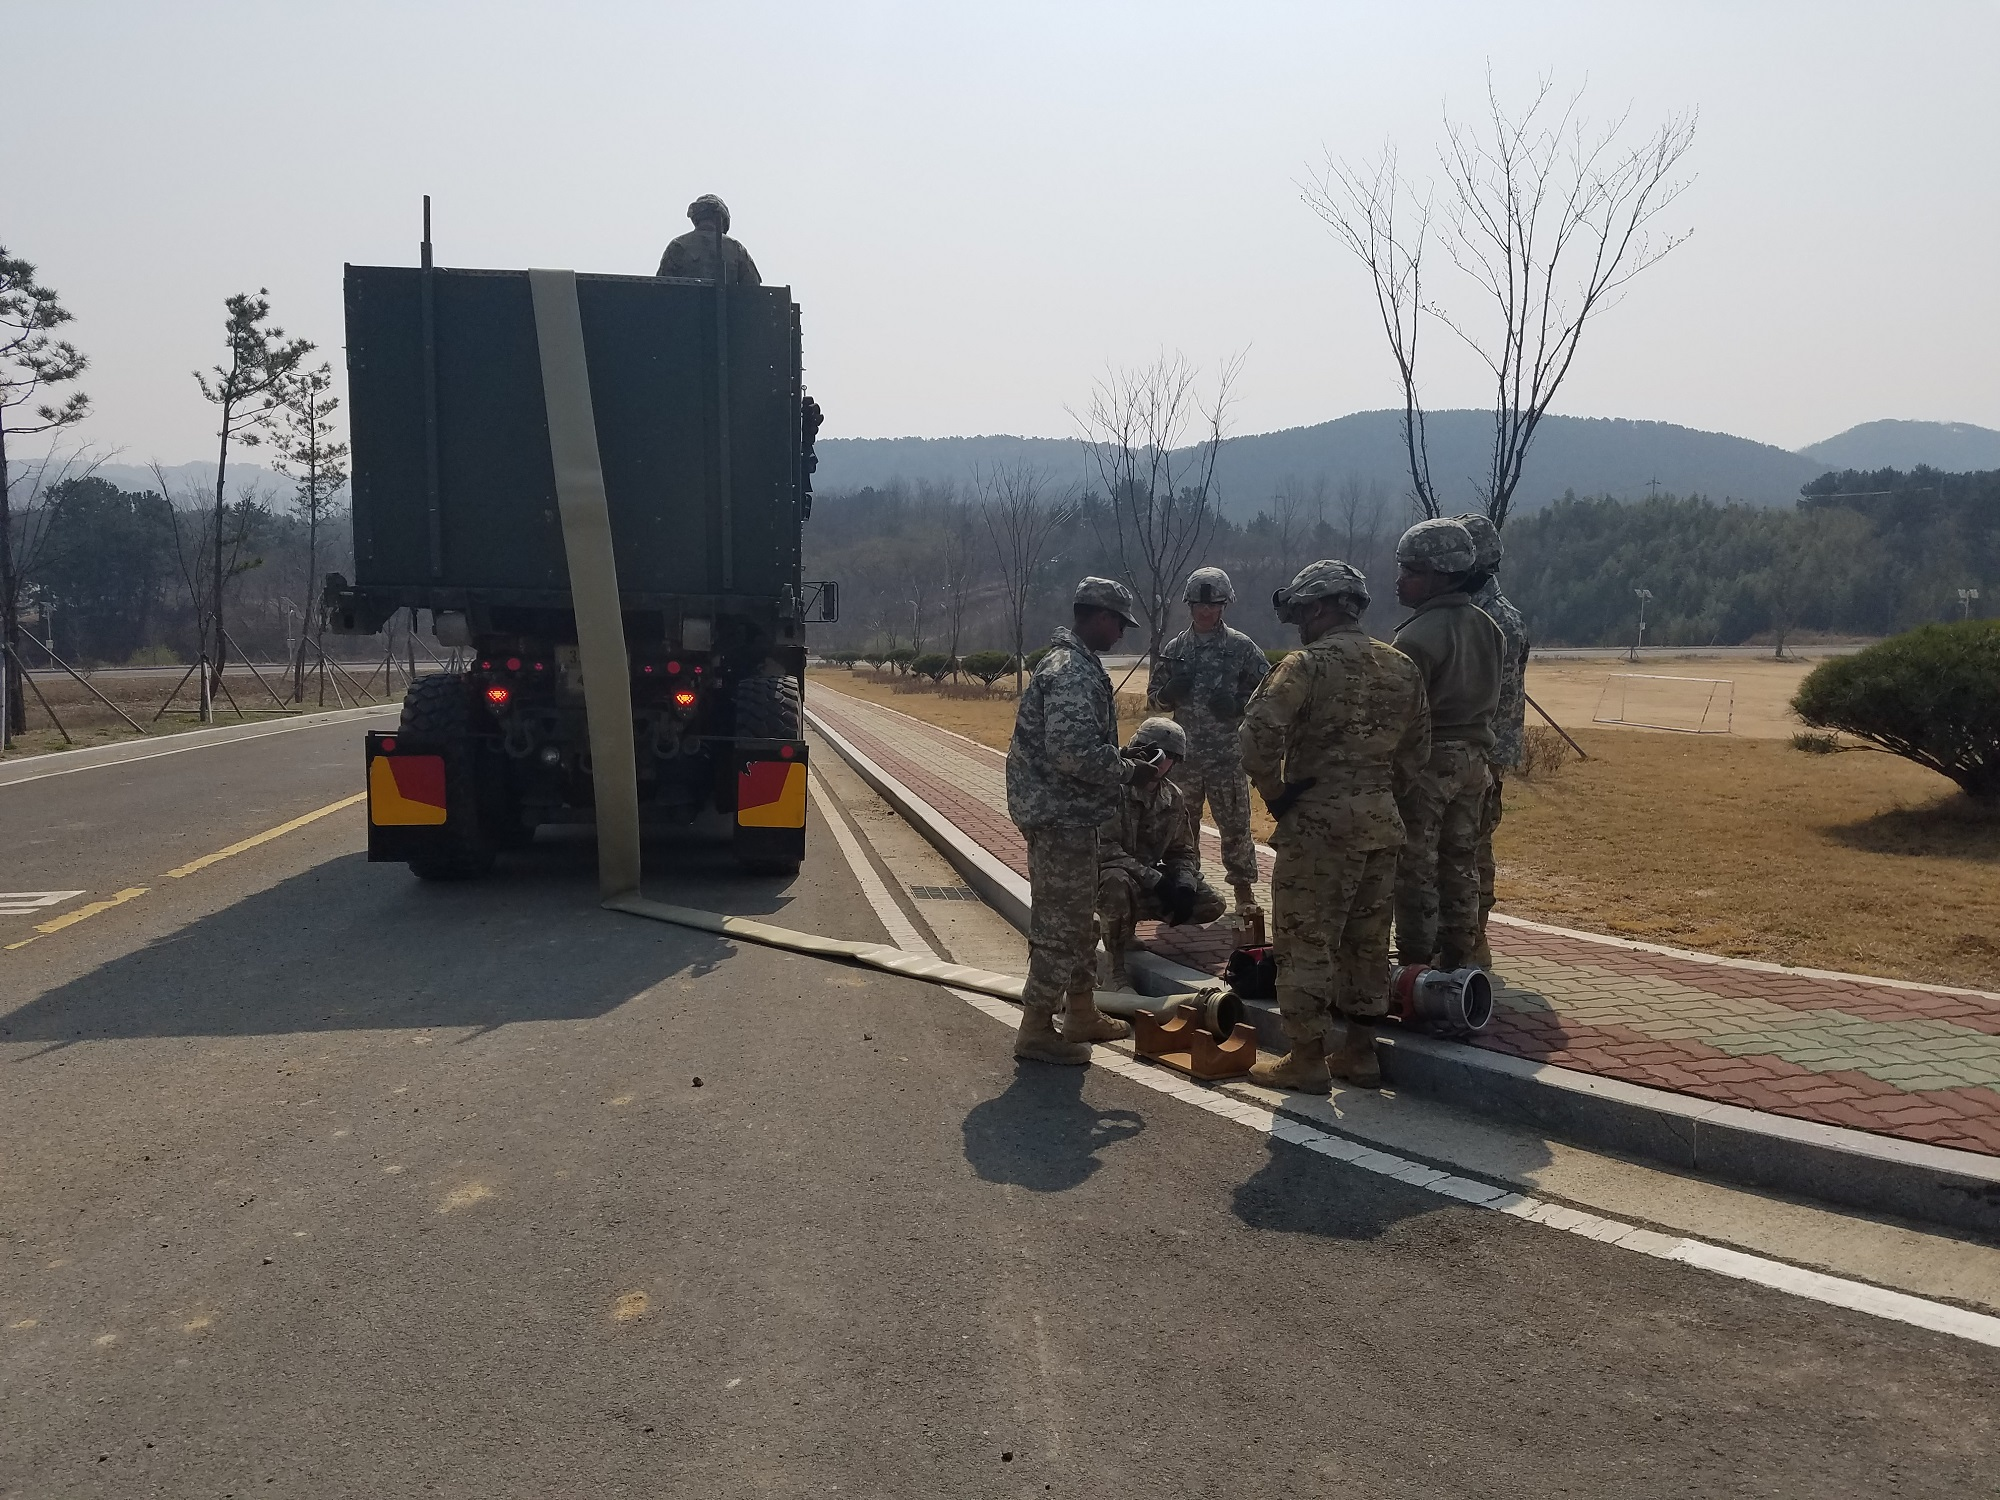 Soldiers from the 339th Quartermaster Company and the 498th Combat Service Support Battalion used existing culverts to thread 9,500 feet of lay-flat hose though pipes during the Combined Joint Logistics Over-the-Shore exercise at Pohang, South Korea, last spring. The hose is part of the Fight Tonight Emergency Fuel Distribution System, which can deliver 720,000 gallons of fuel per day. (U.S. Army photo by Drew Downing, RDECOM)